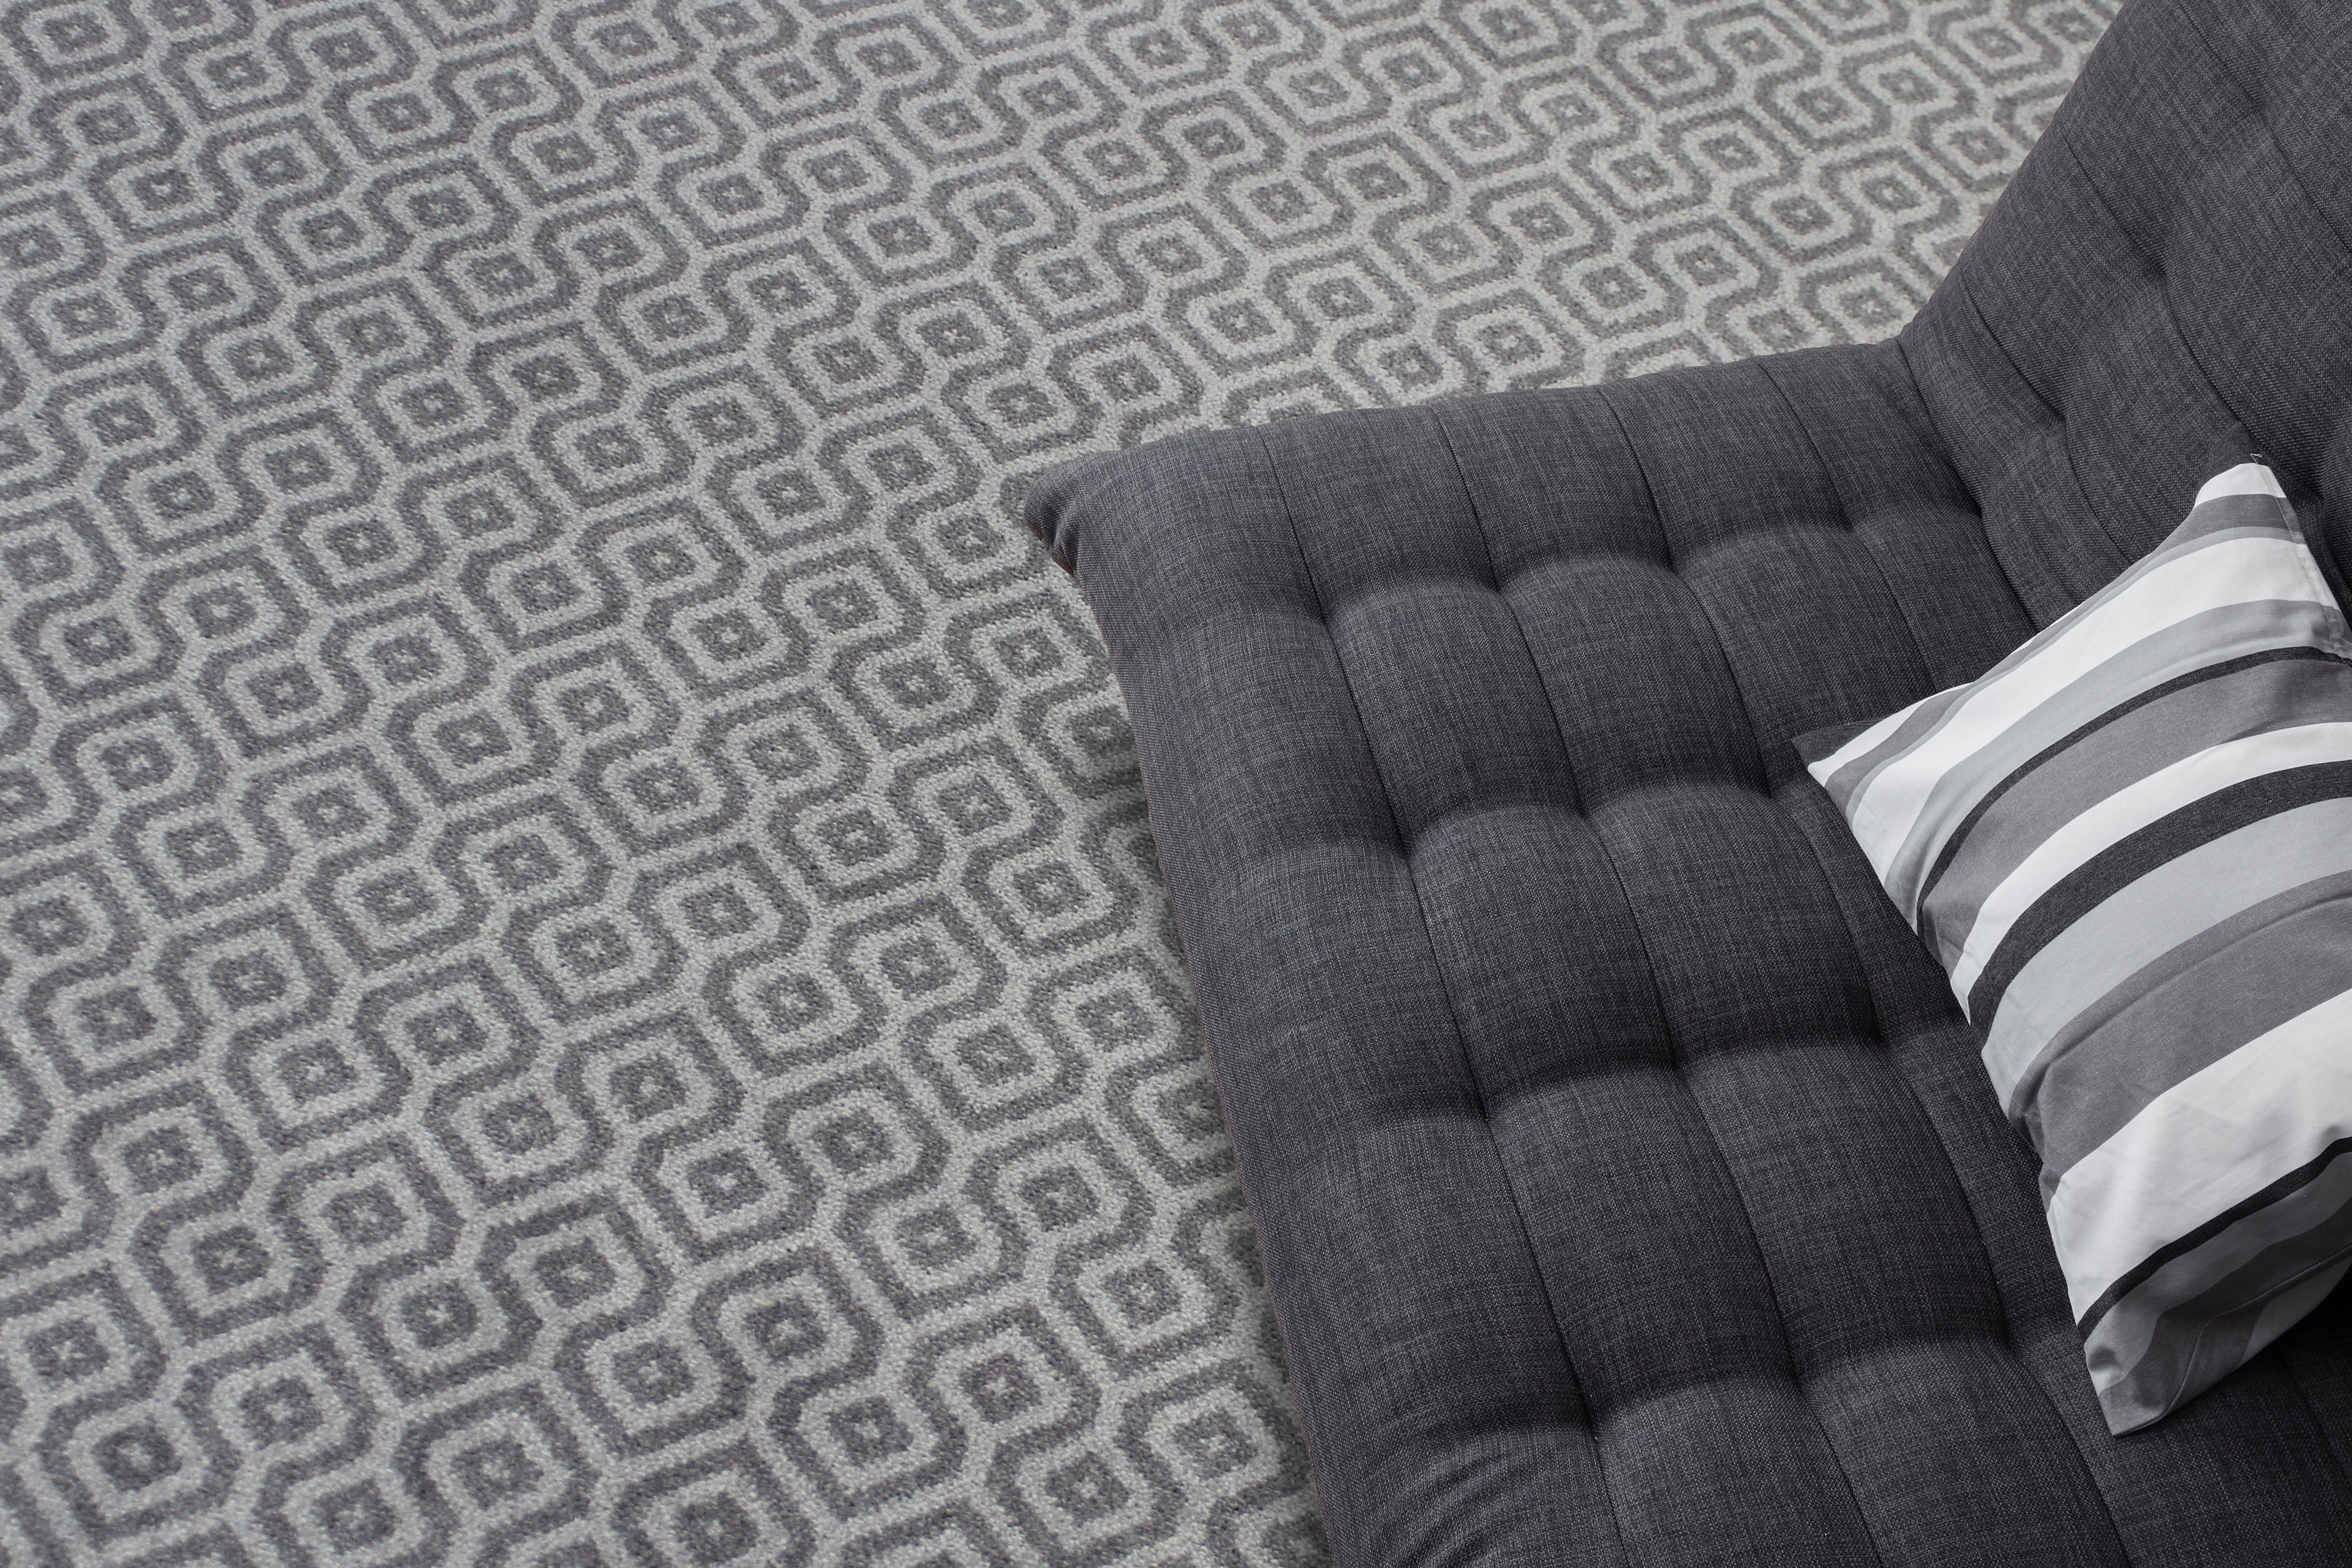 Moda Woven Axminster Carpet, available at selected